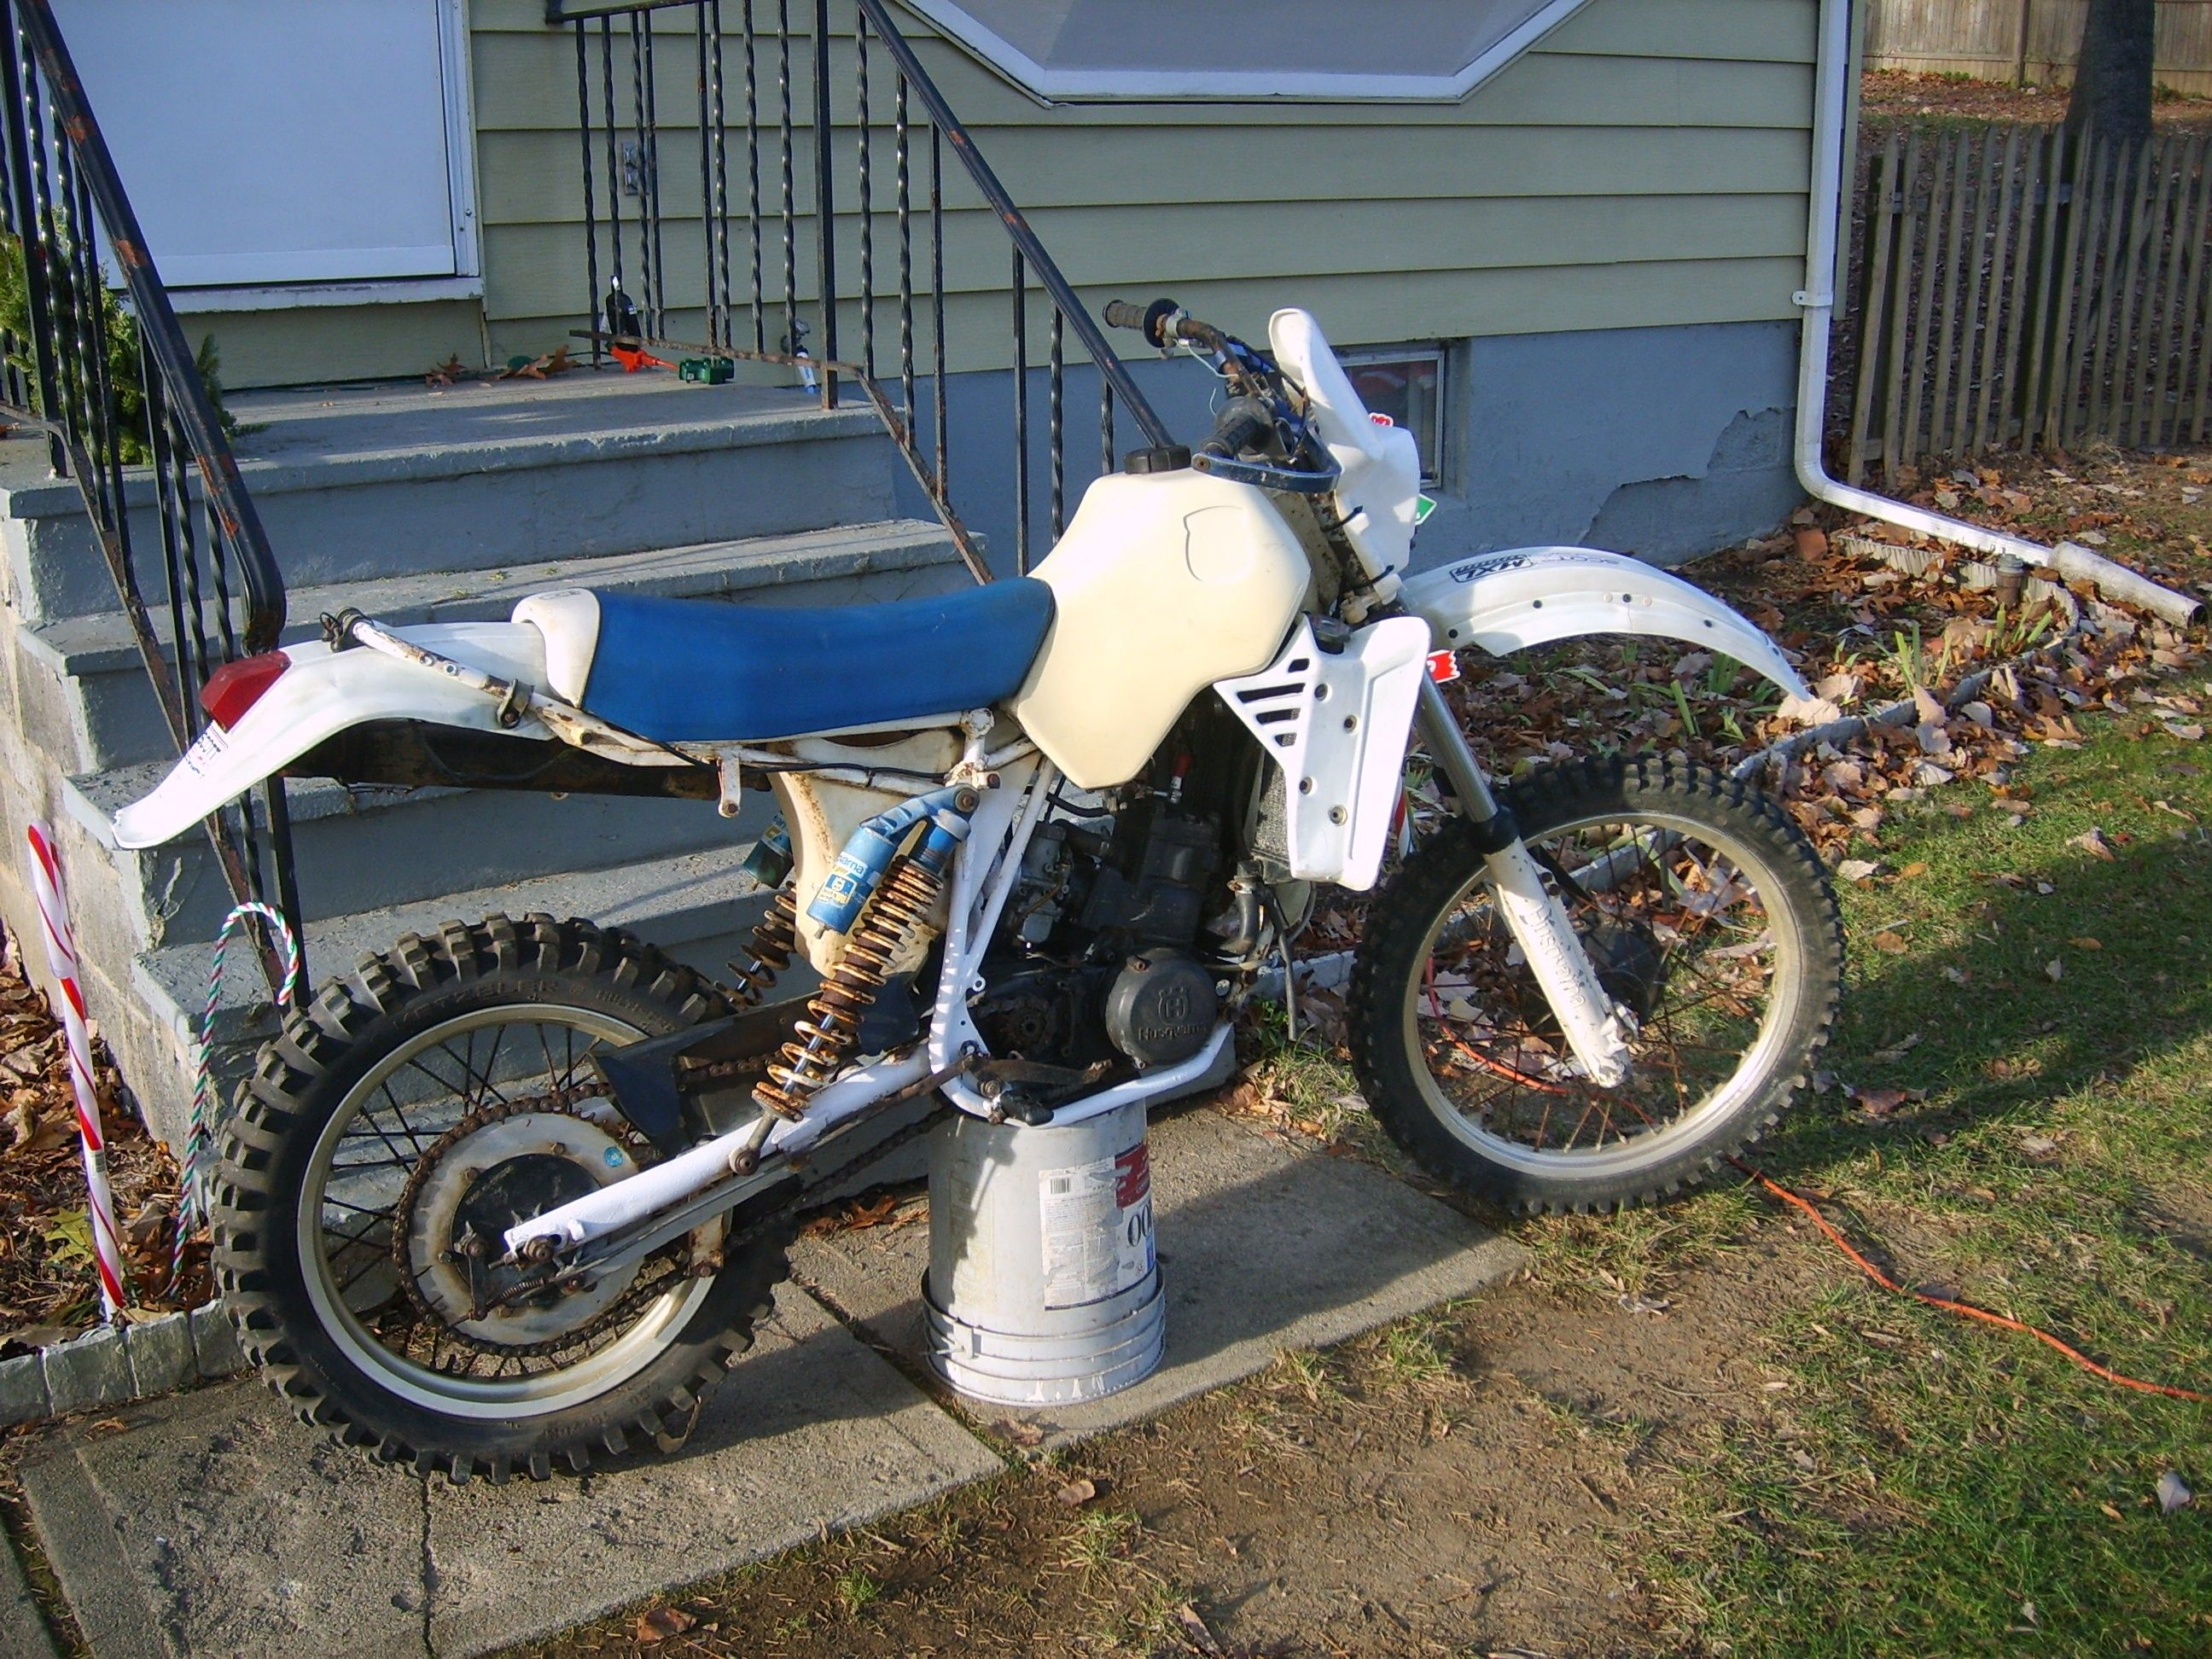 1985 Husqvarna 250WR, just bought it, pic #1